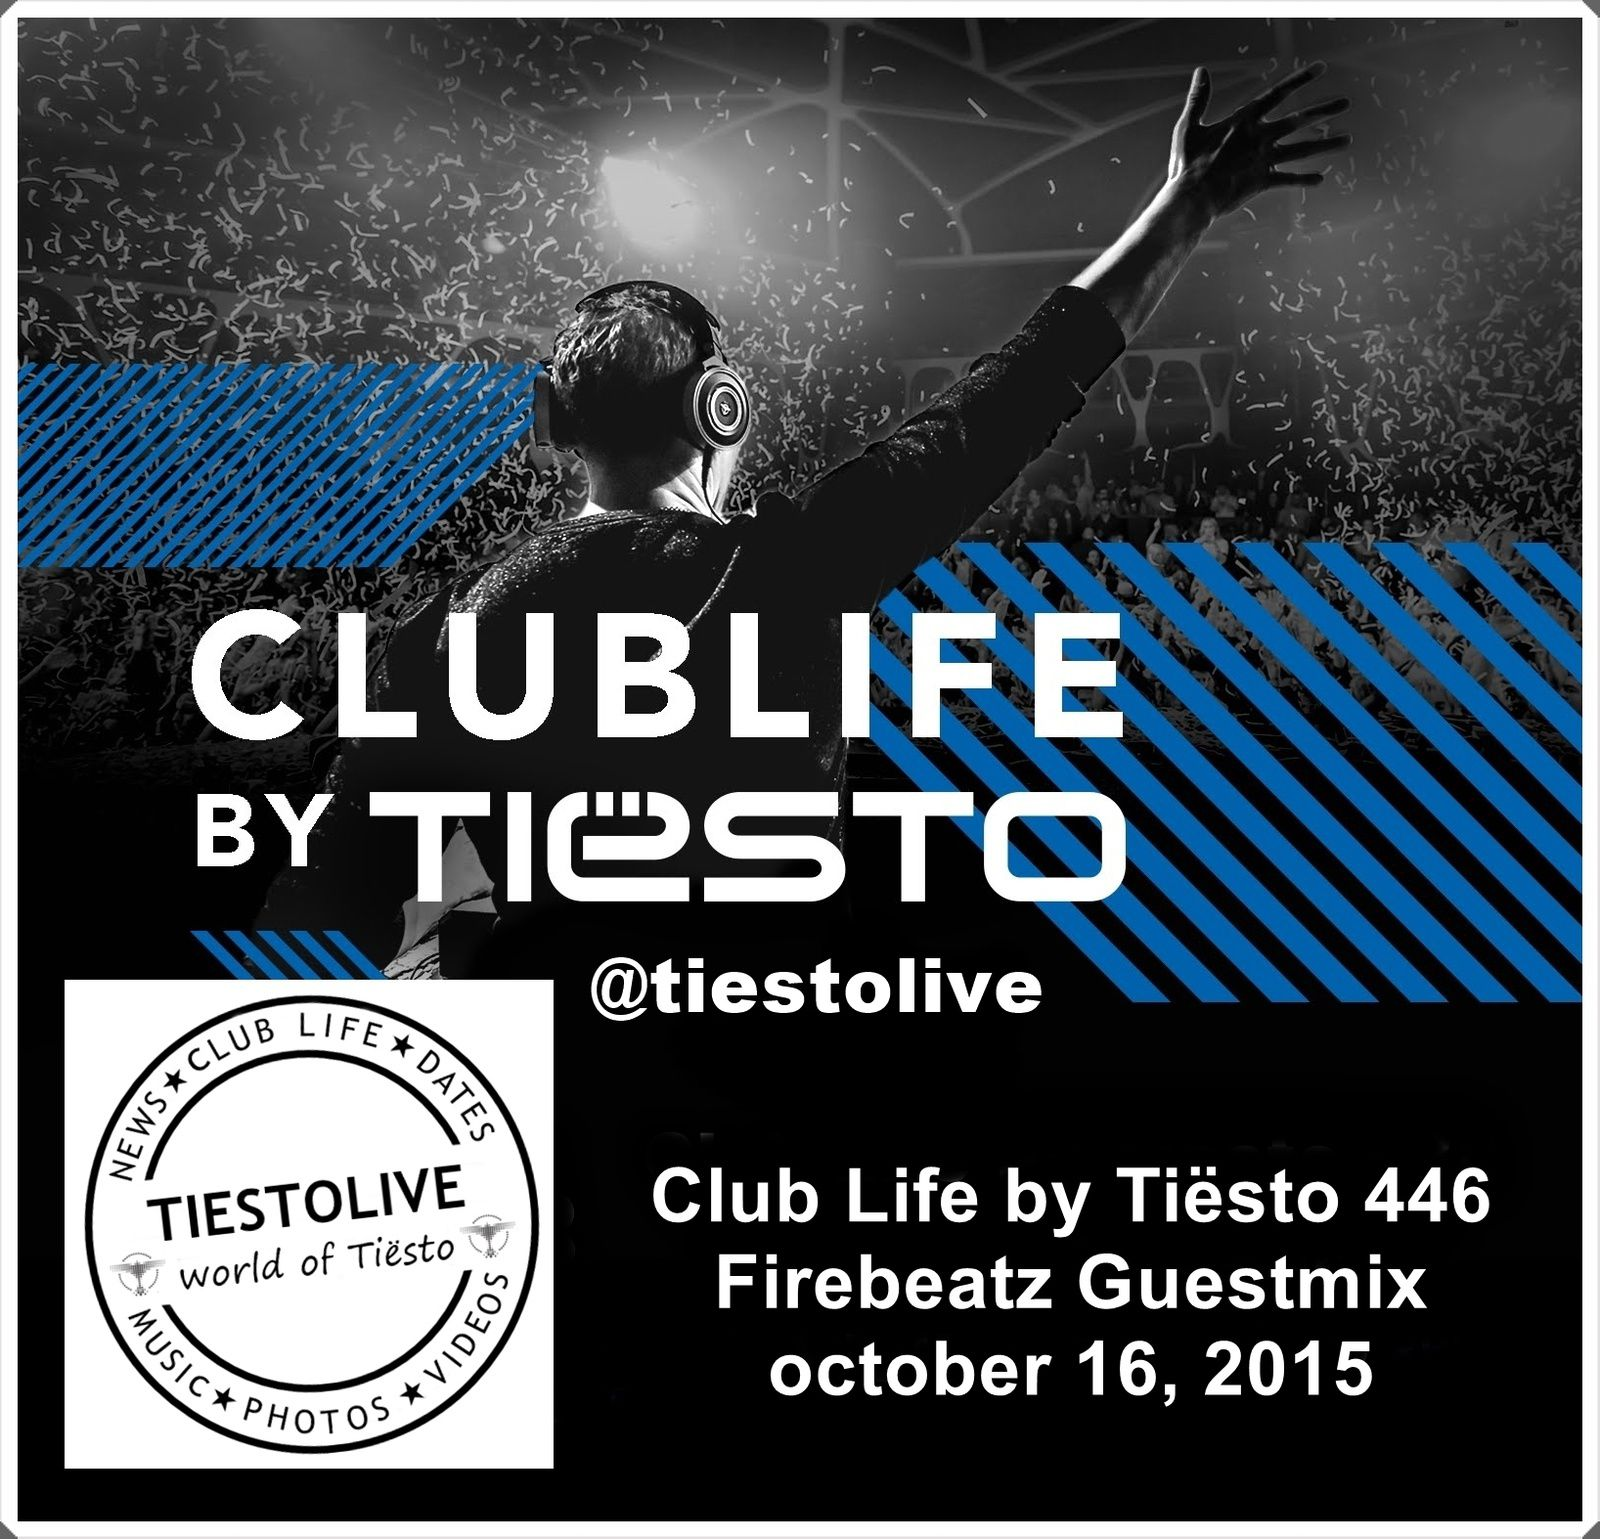 Club Life by Tiësto 446 - Firebeatz Guestmix - october 16, 2015